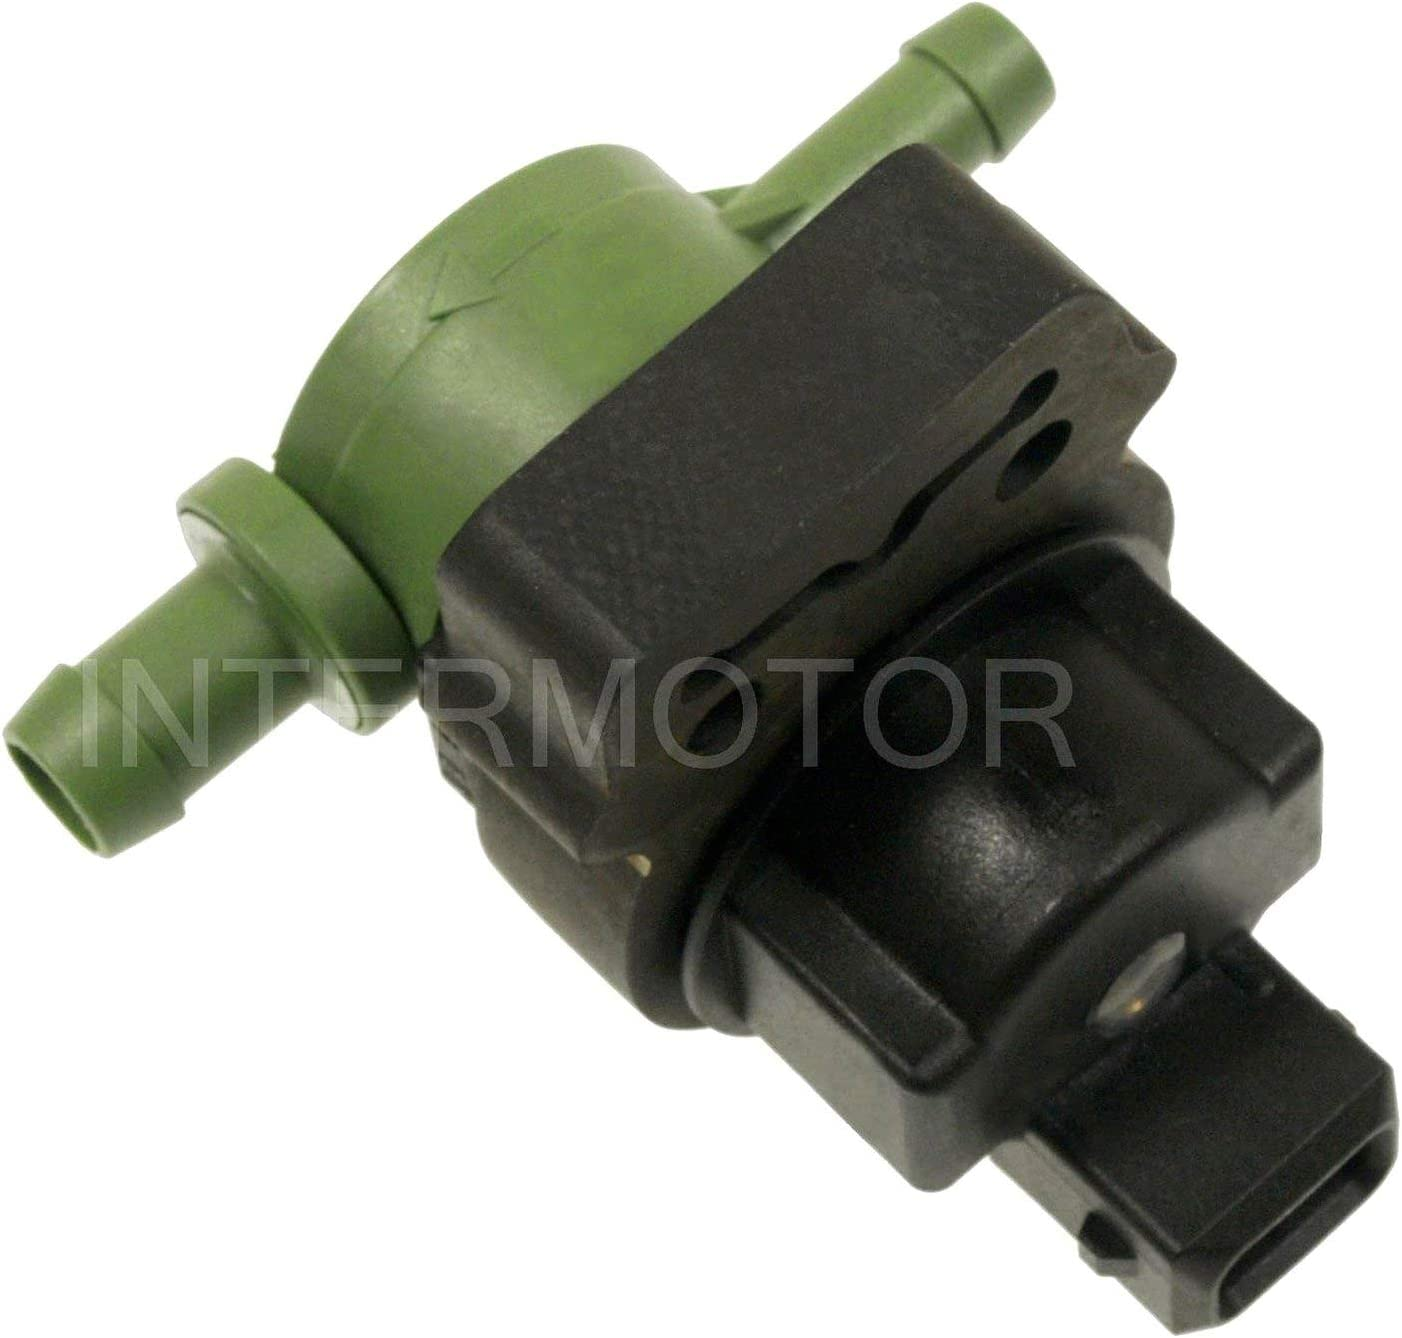 Standard Motor Products New products Superlatite world's highest quality popular CP664 Purge Canister Solenoid